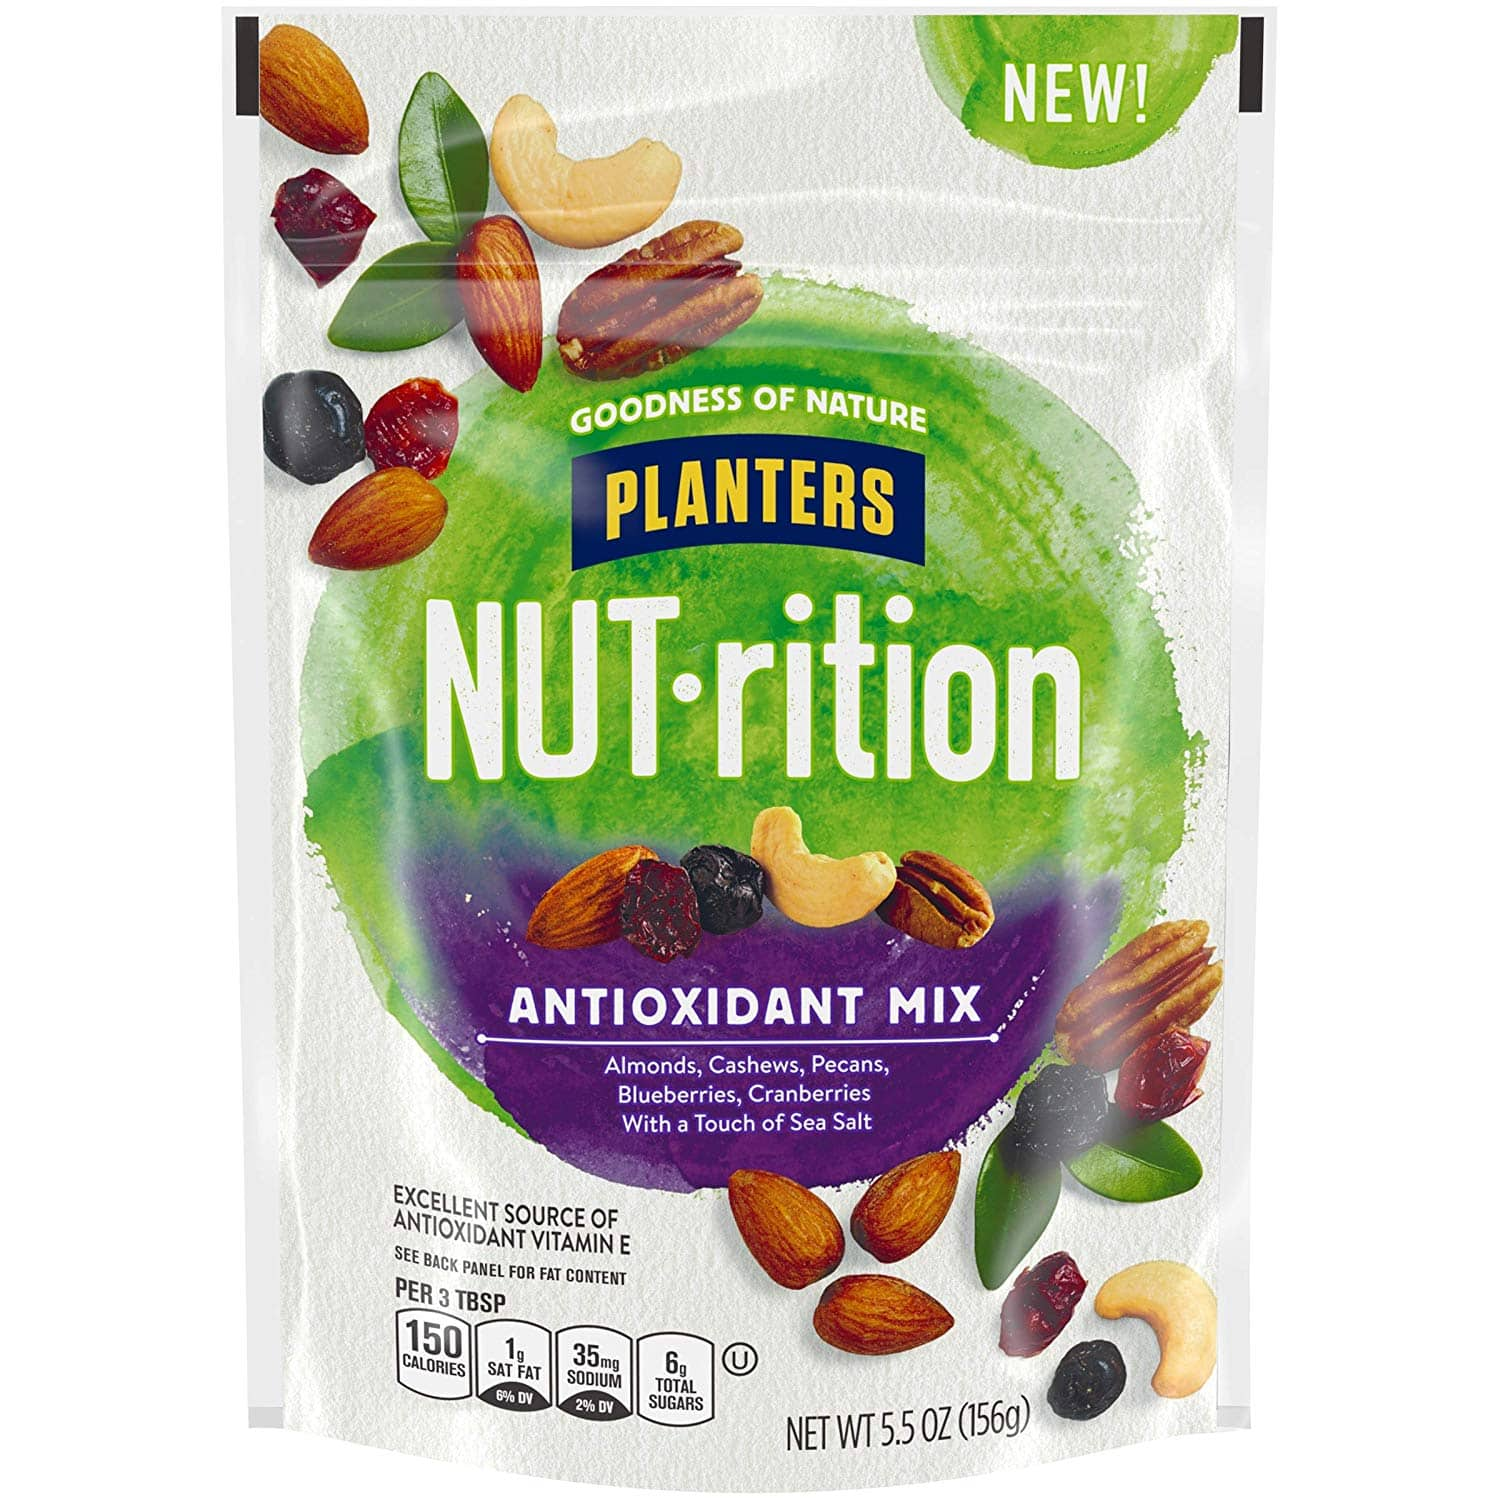 5.5oz Planters NUTrition Nut Mixes: Essential Nutrients or Antioxidant Mix $1.88 w/ S&S